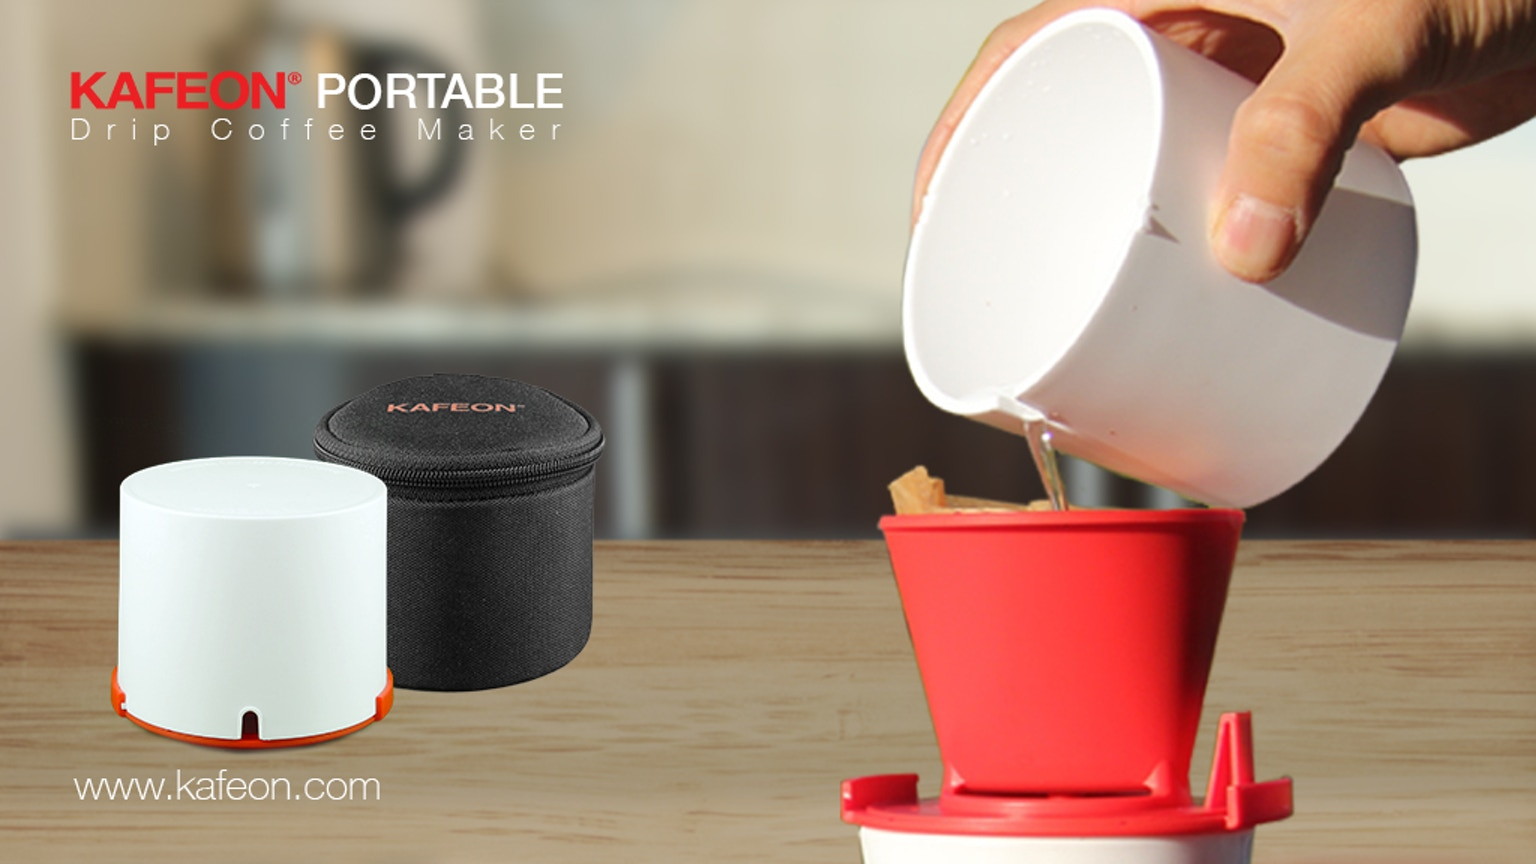 KAFEON PORTABLE - Drip Coffee Maker by KAFEON Kickstarter